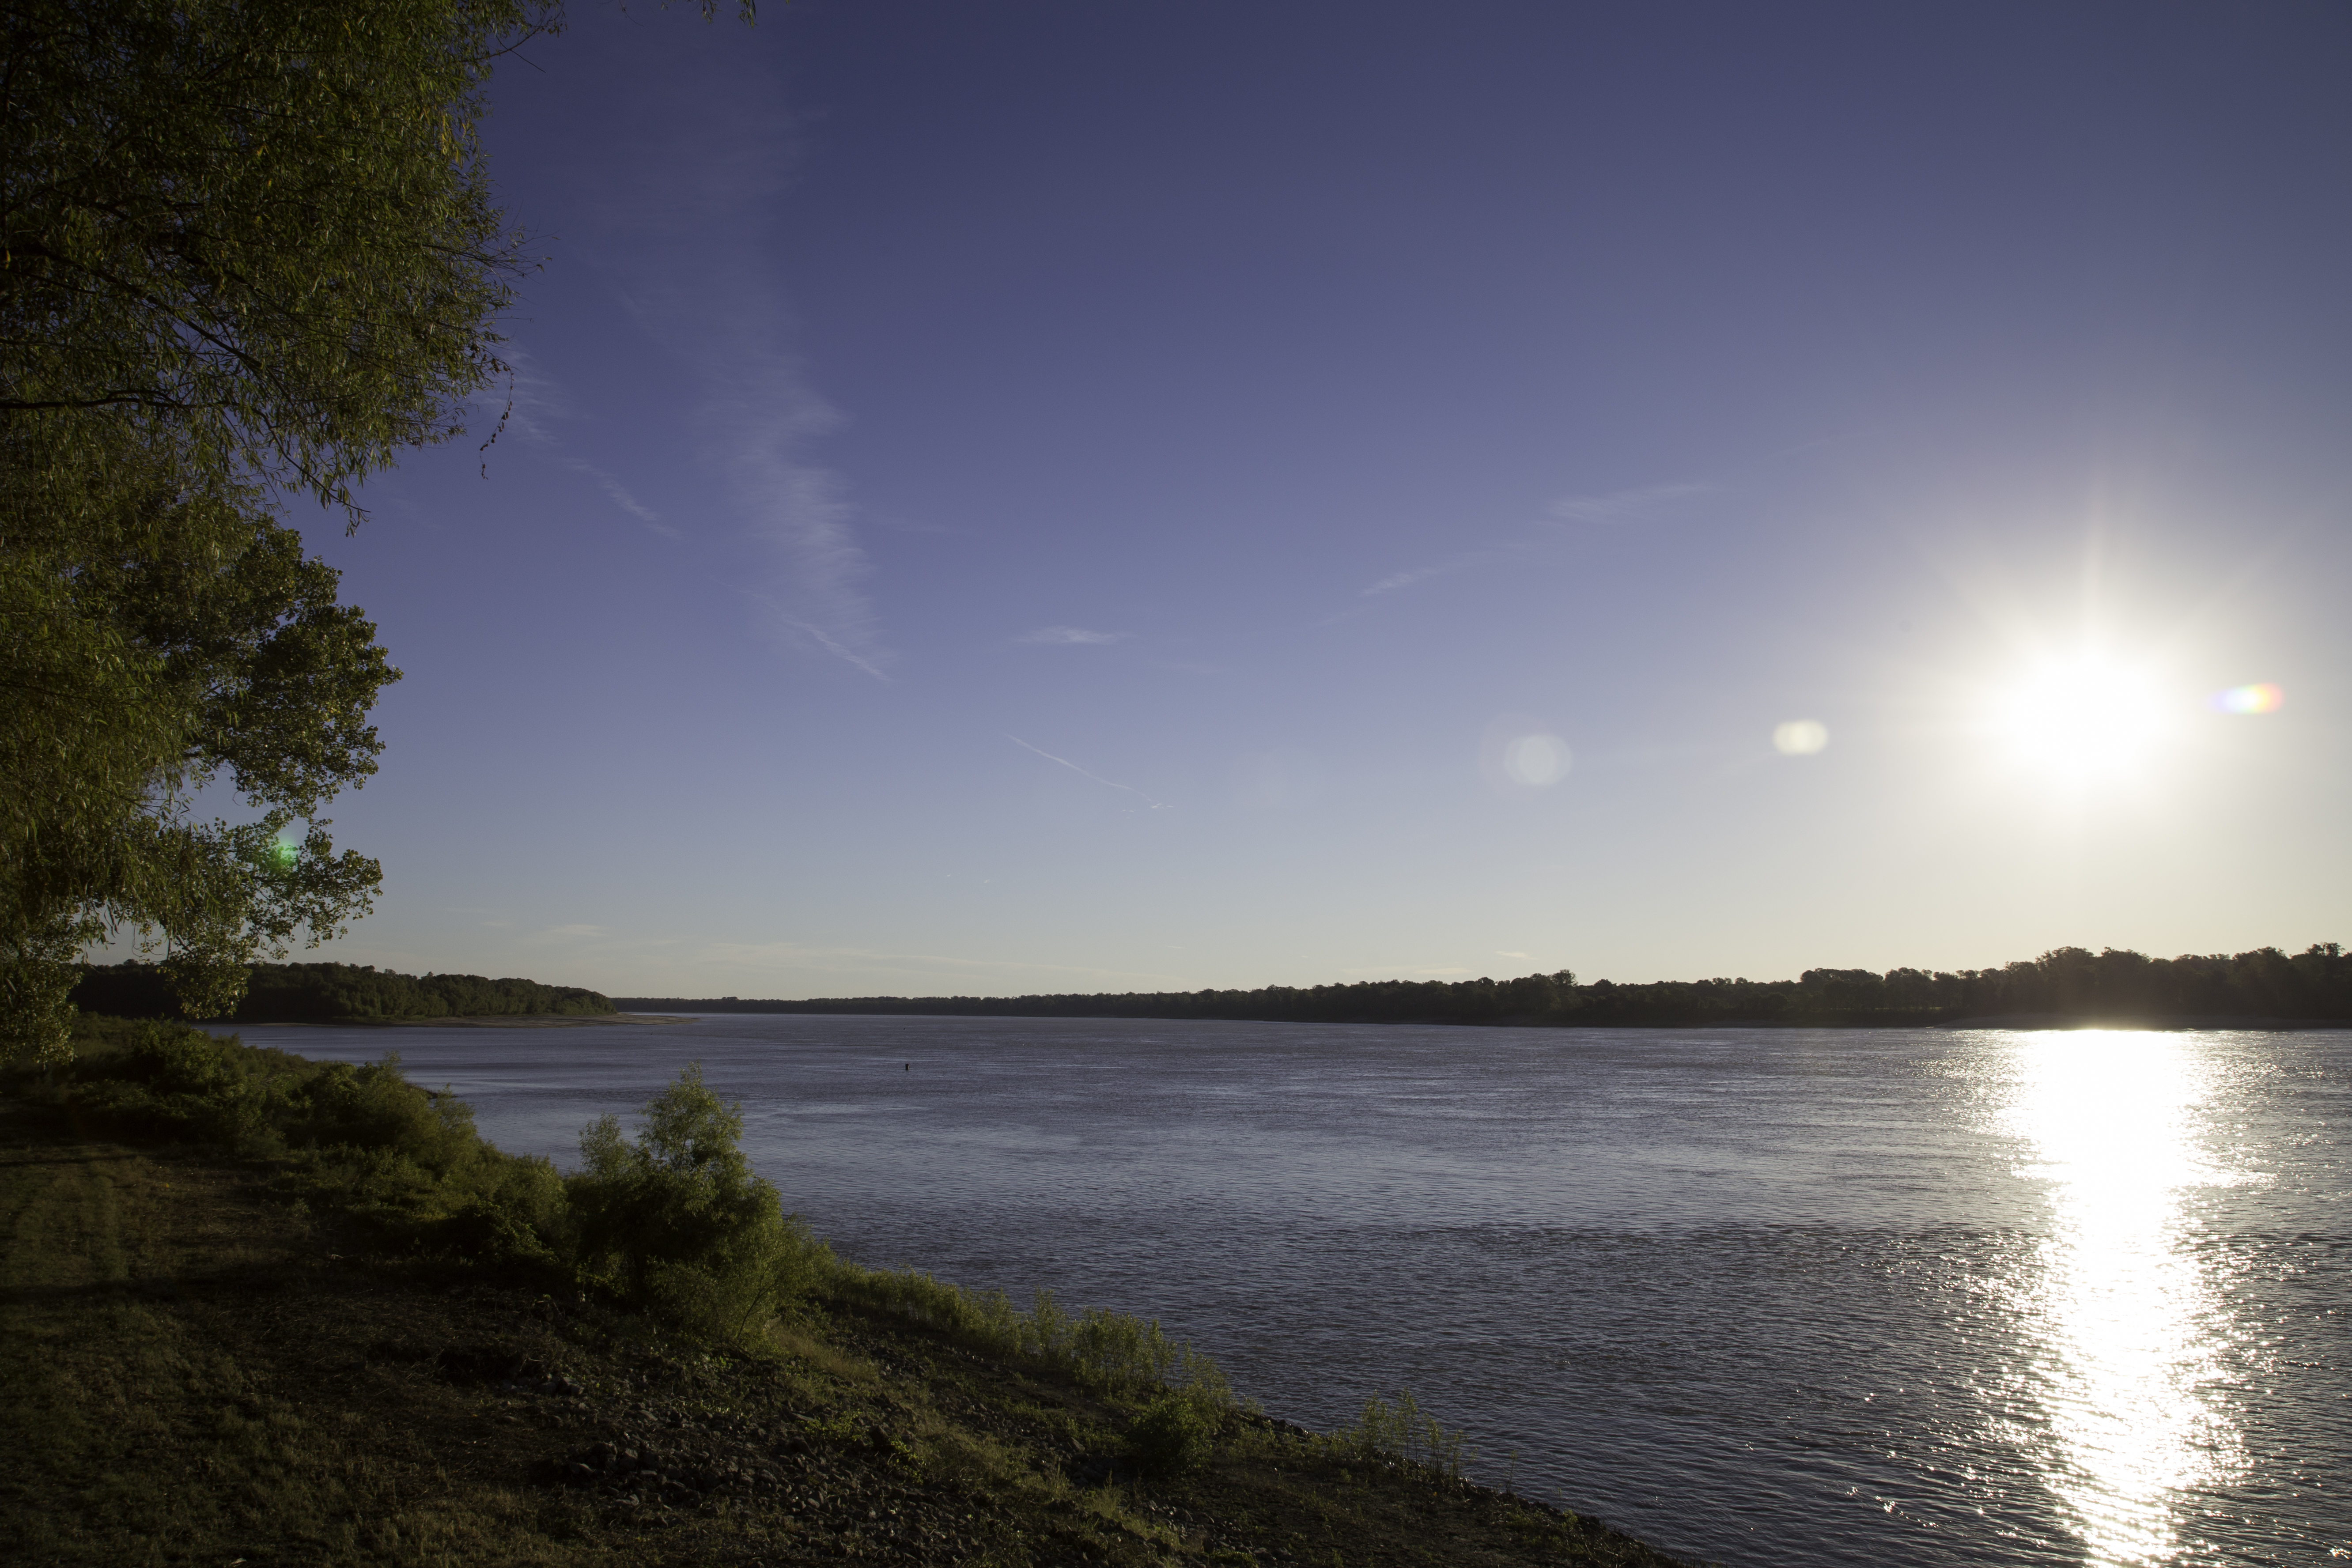 River Mississippi High Quality Wallpapers